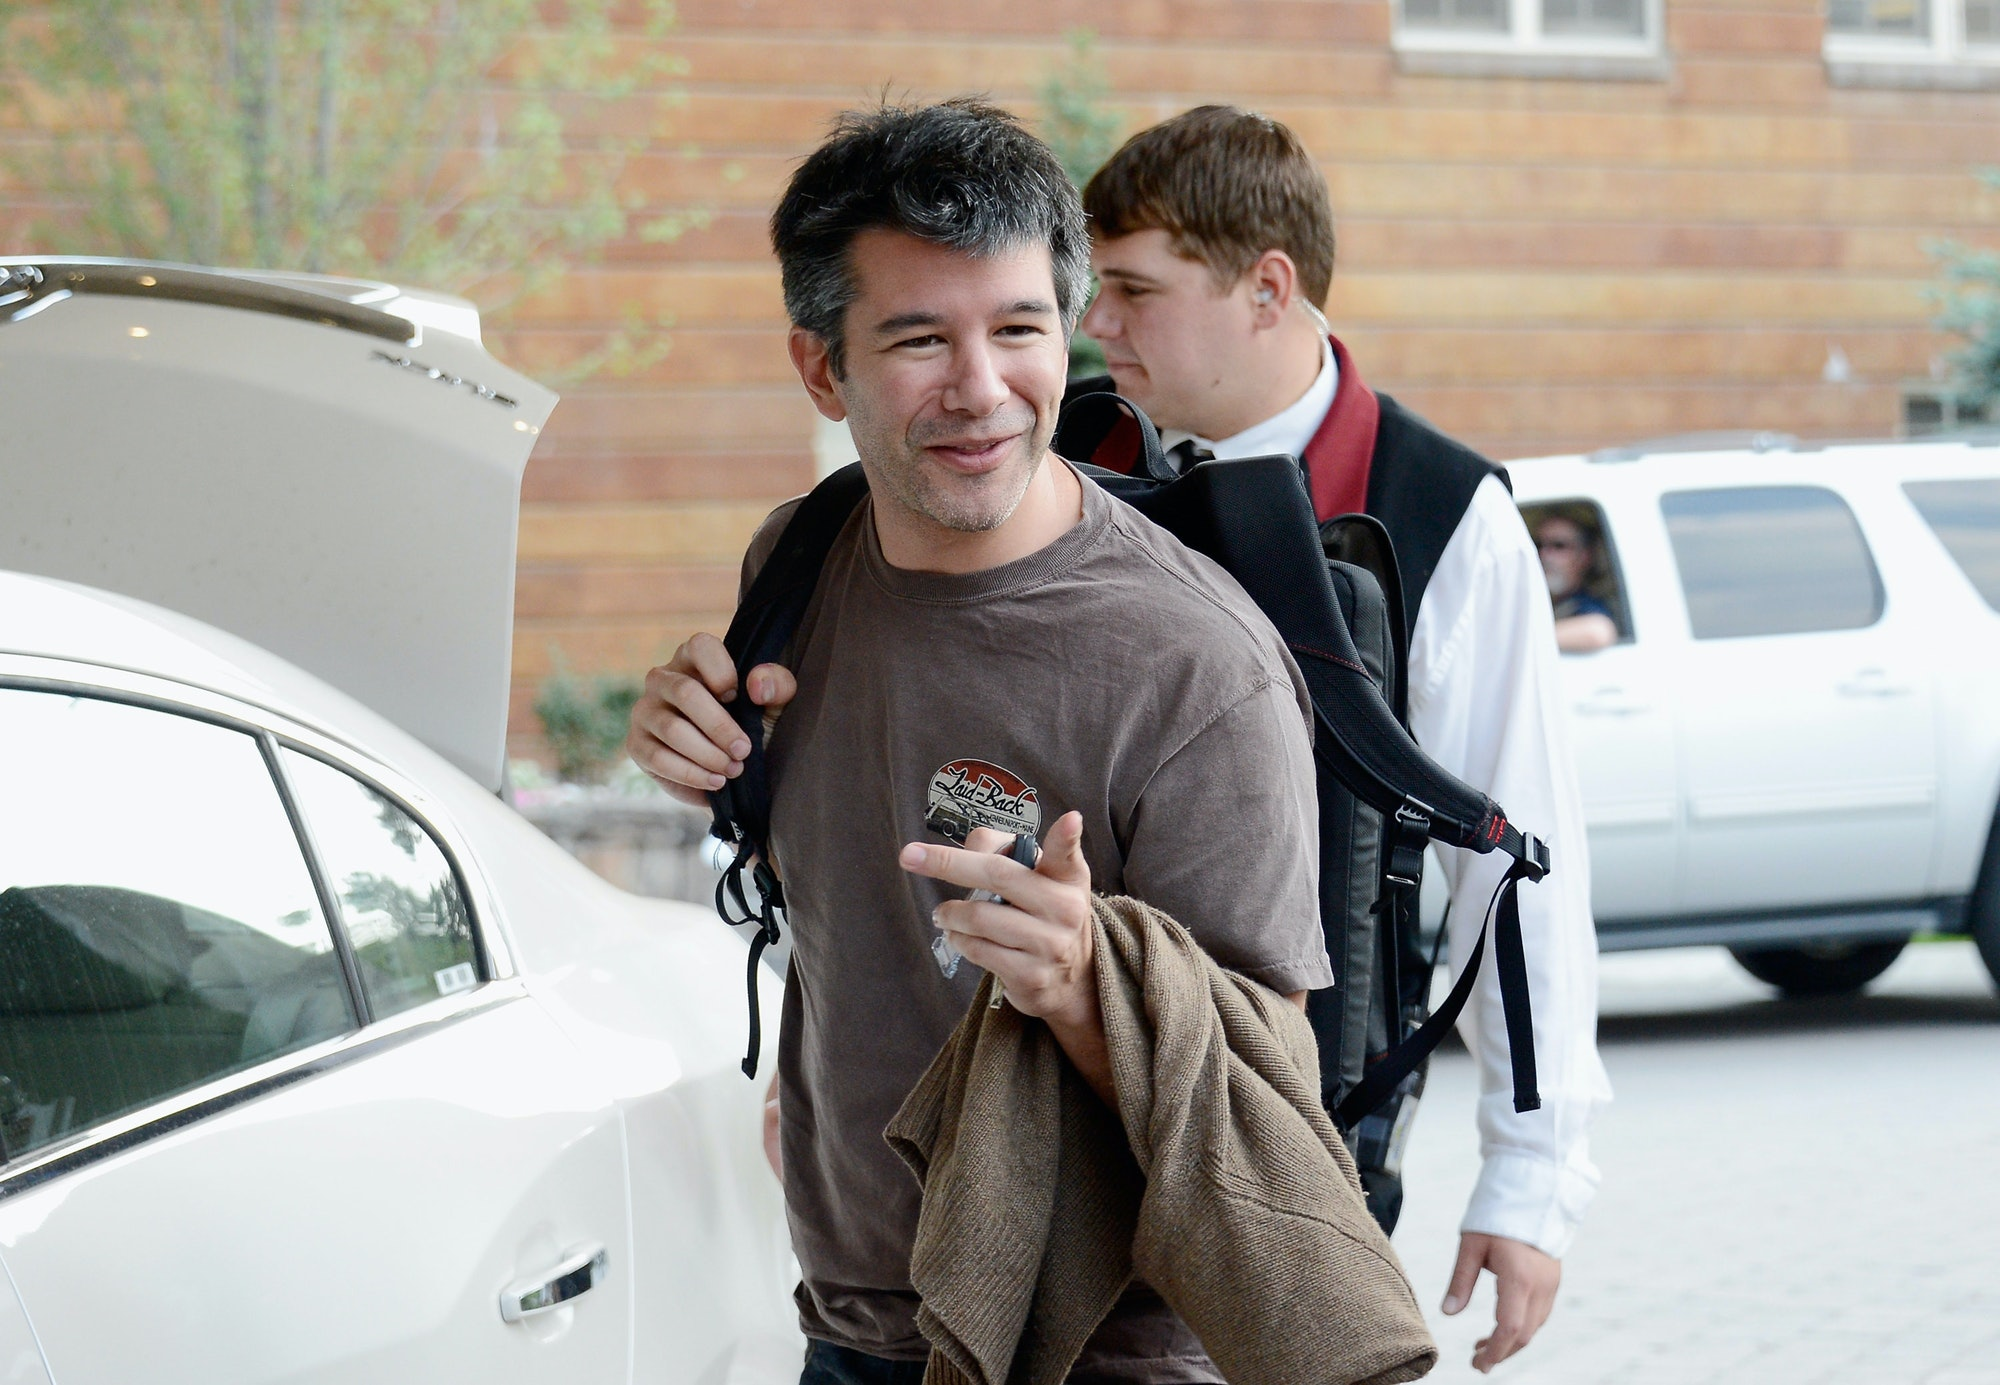 SUN VALLEY, ID - JULY 10: Travis Kalanick, CEO and Co-Founder of Uber, arrives for the Allen & Company Sun Valley Conference on July 10, 2012 in Sun Valley, Idaho. Warren Buffett, Bill Gates and Mark Zuckerberg have been invited to attend the conference which begins Tuesday. (Photo by Kevork Djansezian/Getty Images)